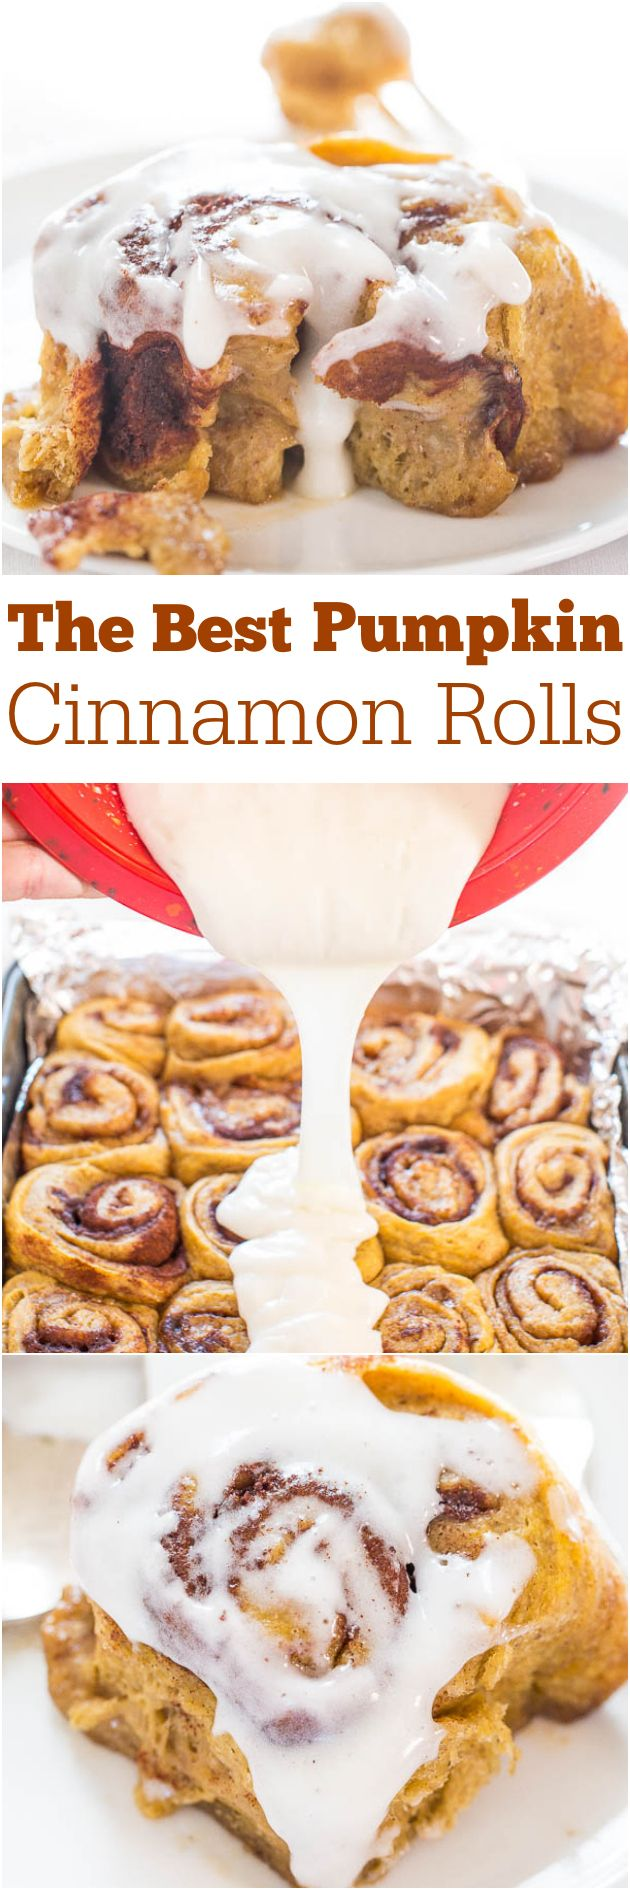 The Best Pumpkin Cinnamon Rolls -  Super soft, fluffy, and topped with a cream cheese glaze! Move over Cinnabon, these are better!!